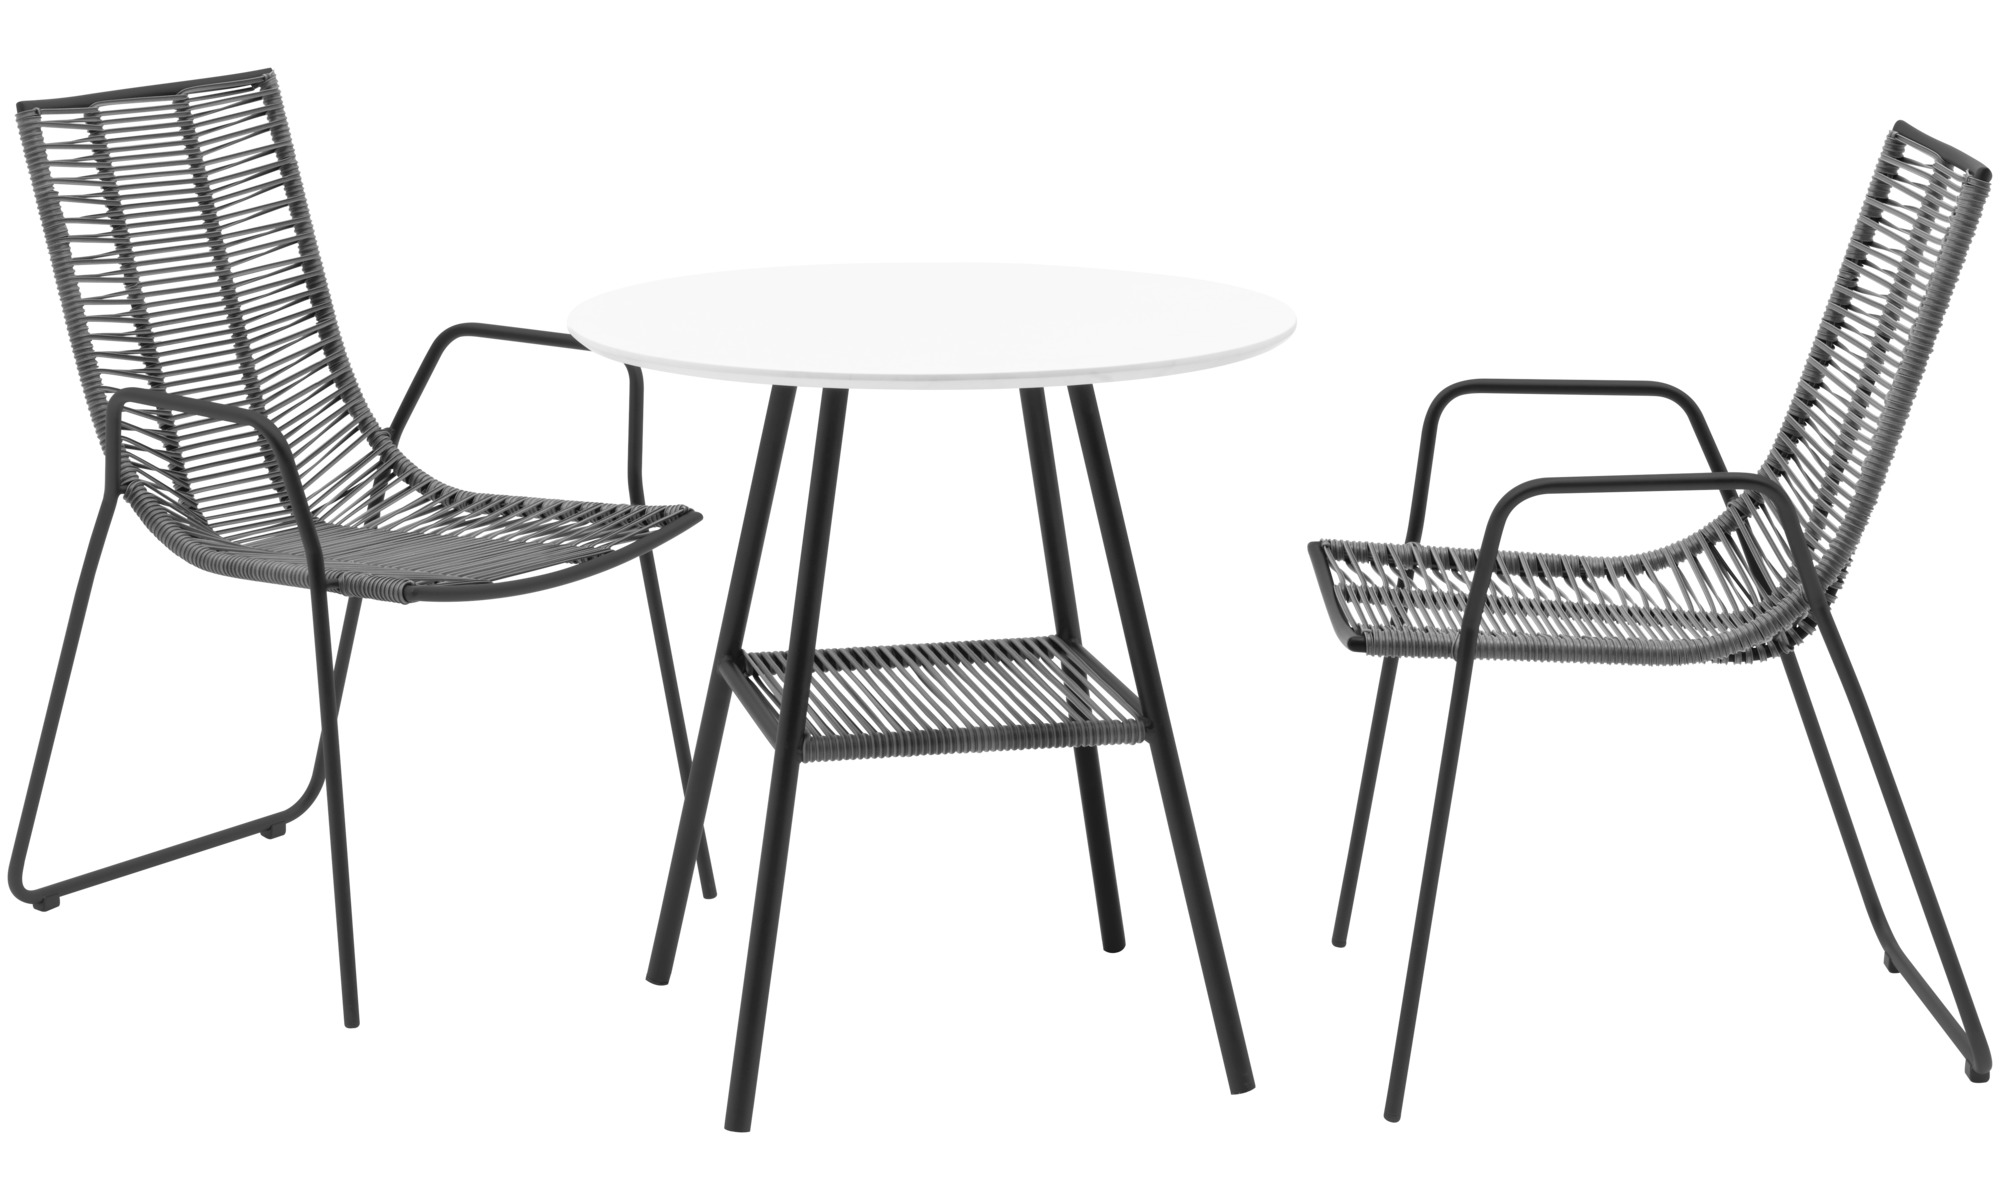 Habitat Outside Sofa Elba Table For In And Outdoor Use Boconcept